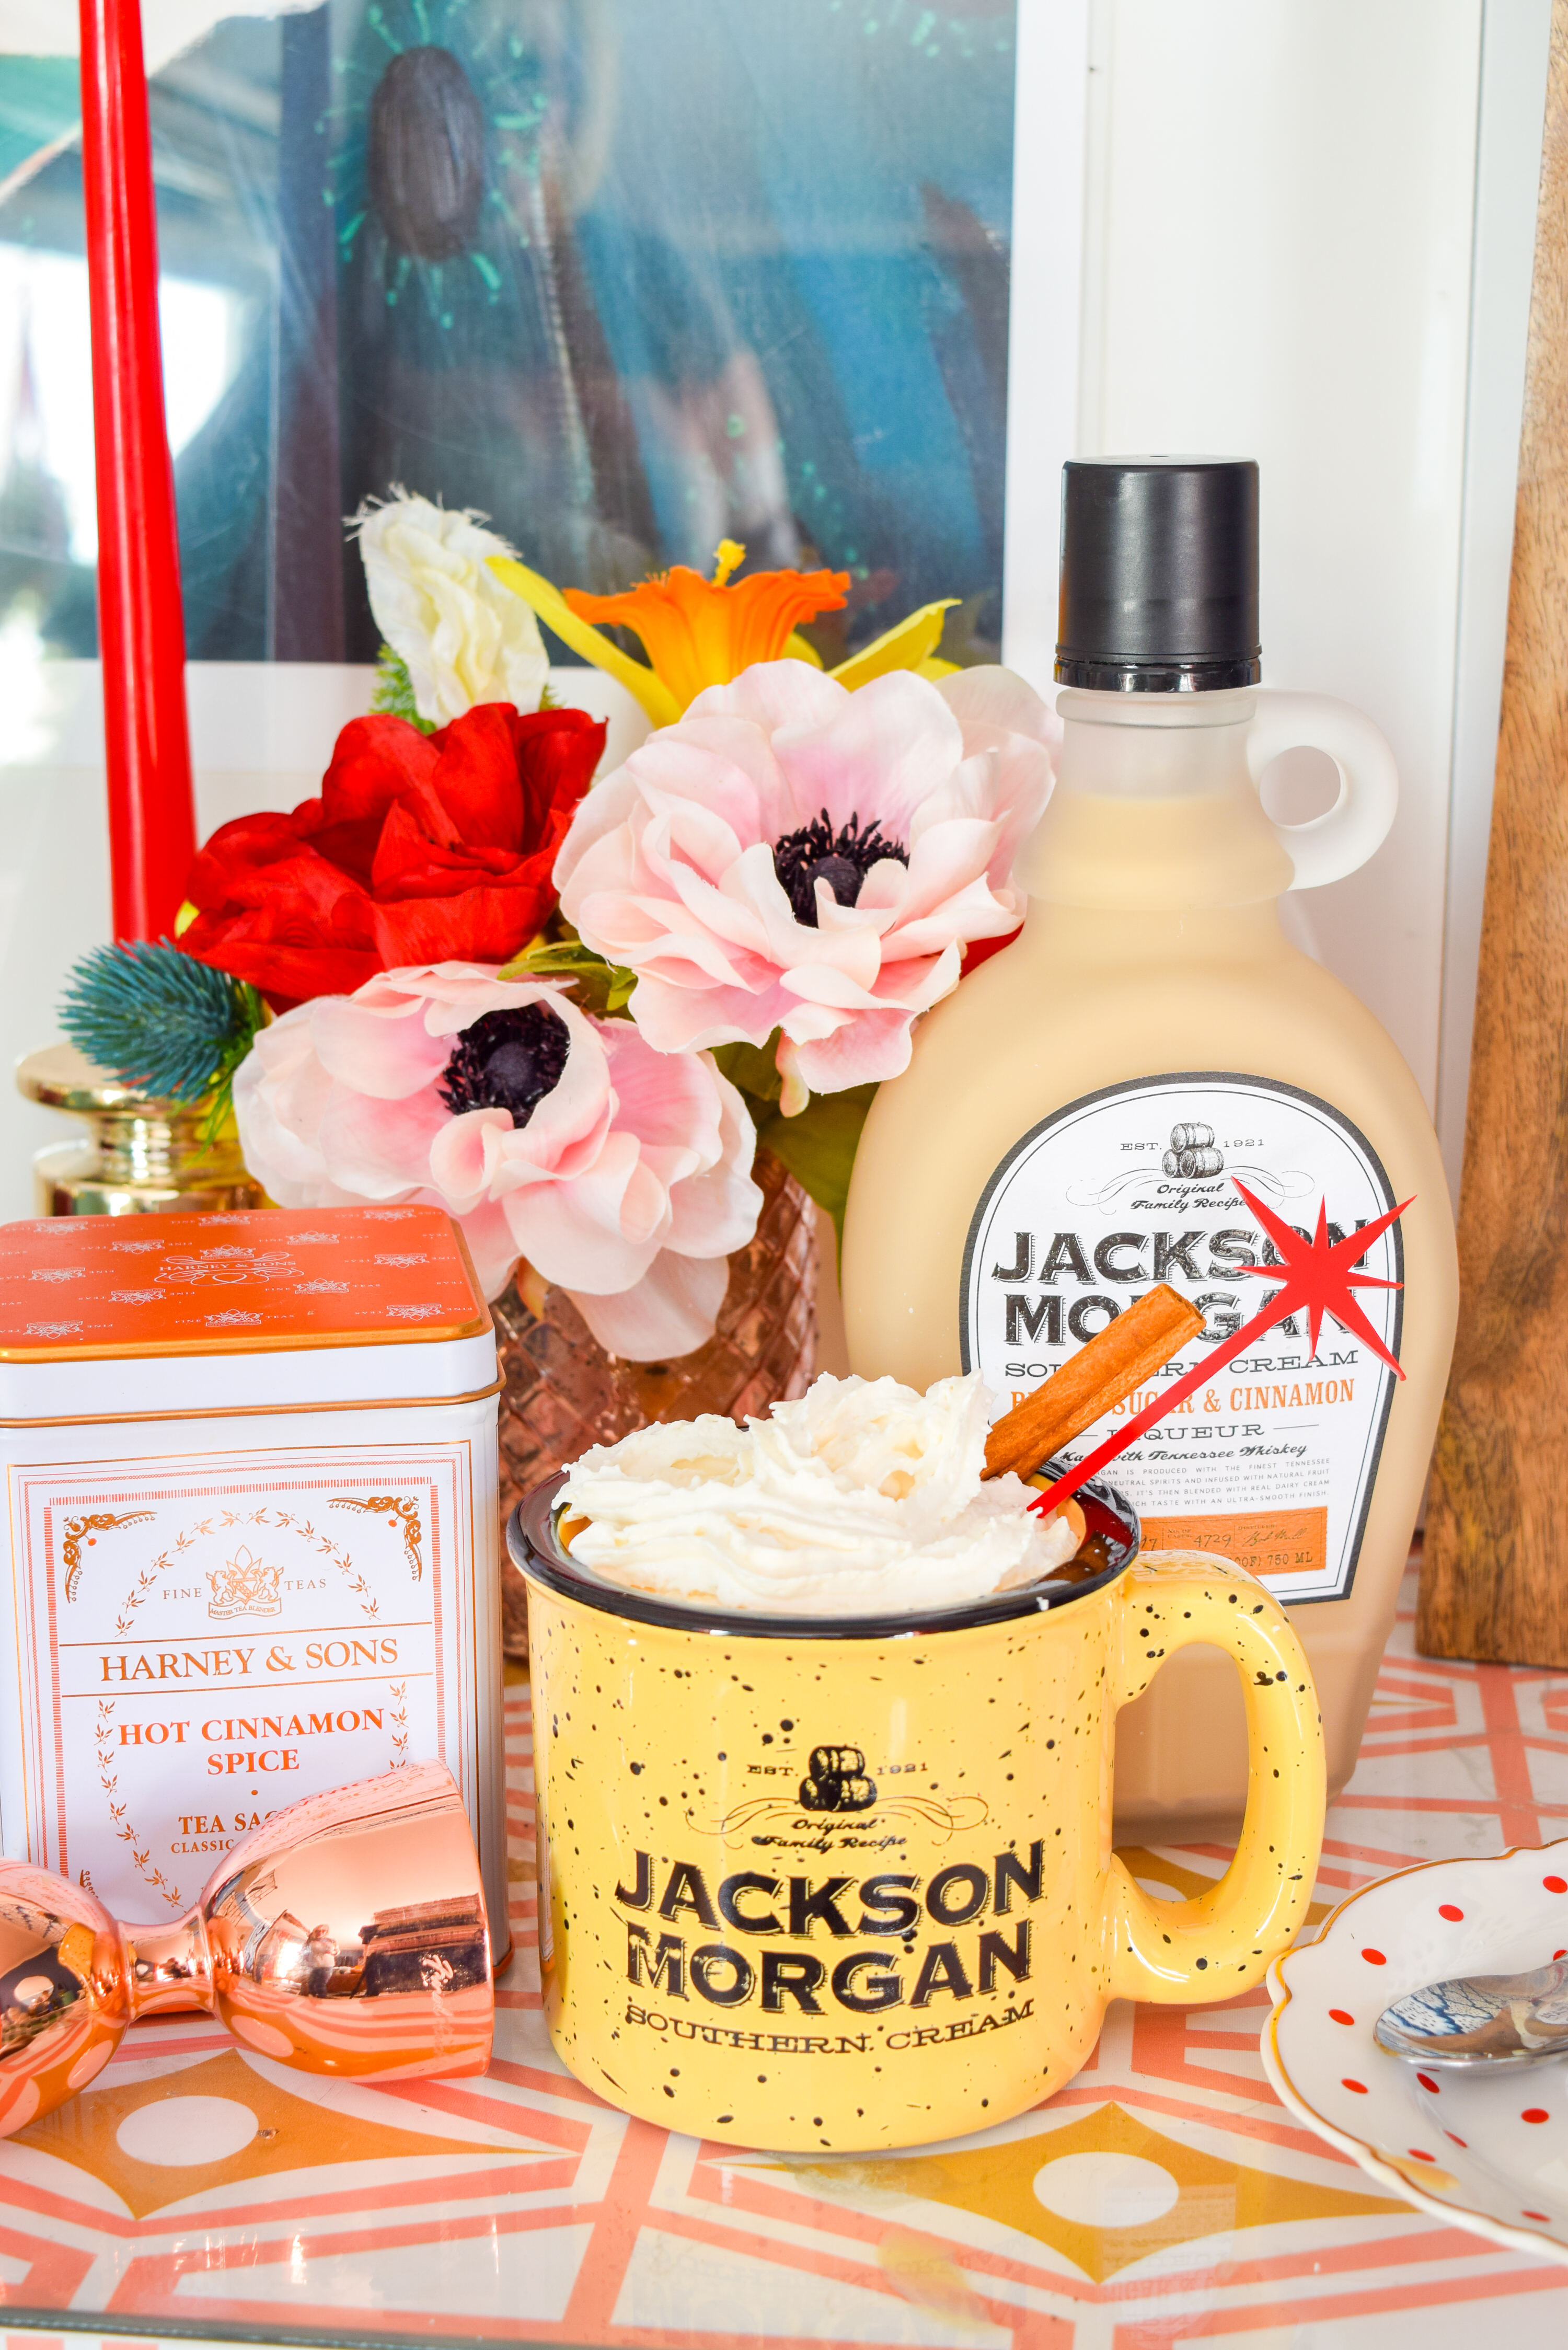 I said brrrr! It's cold in here! You gotta get some Brown sugar & Cinnamon Hot Toddies up in this atmosphere. Oh, and some Brown Sugar & Cinnamon Jackson Morgan Southern Cream.